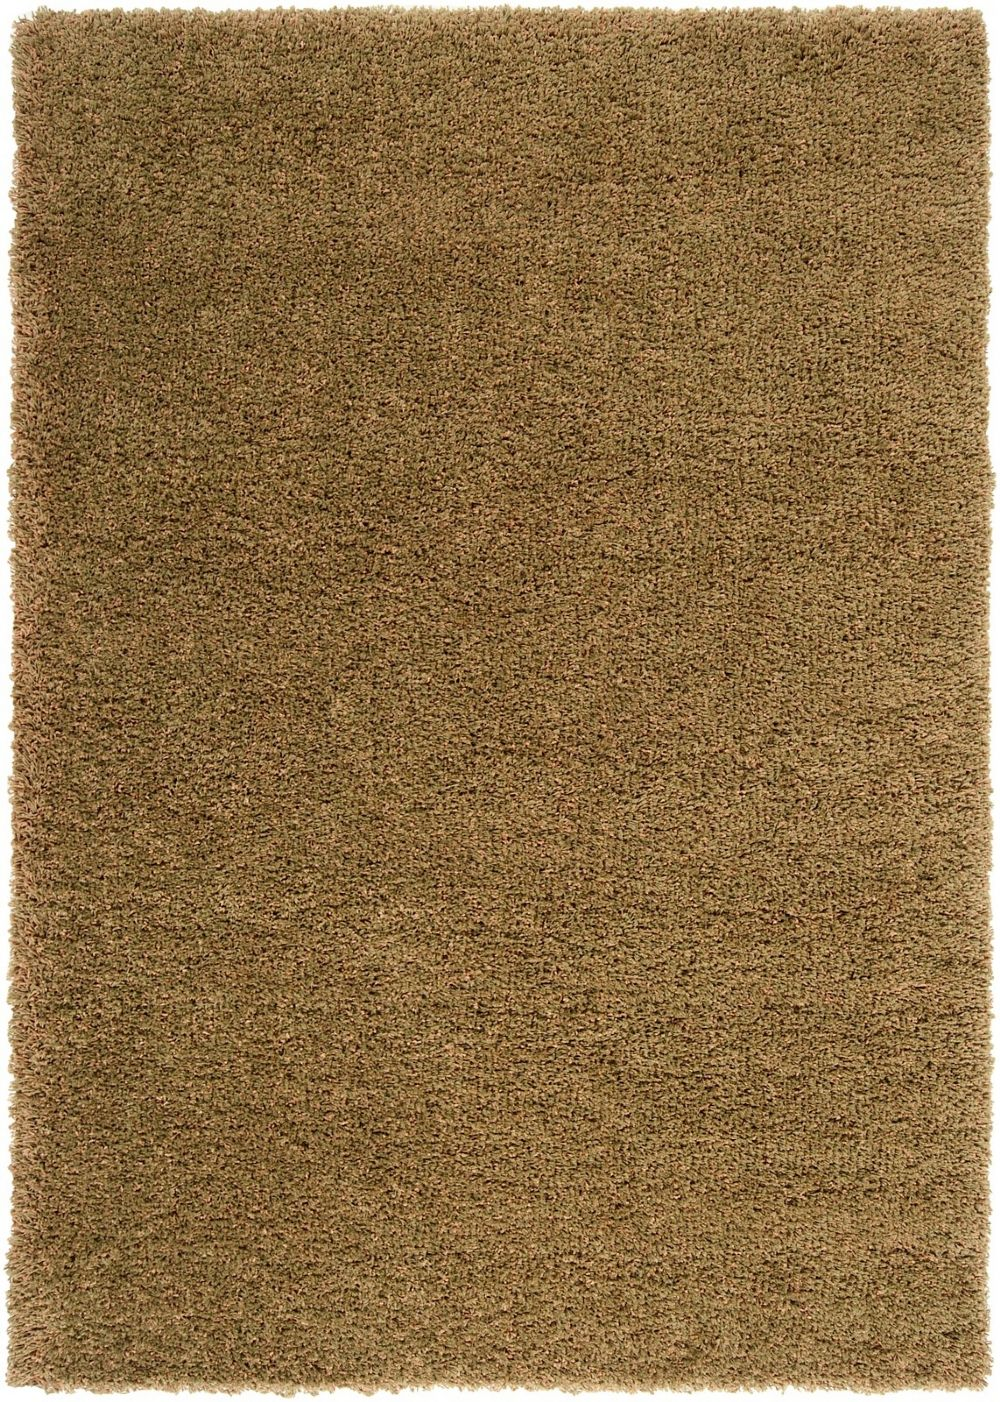 surya luxury shag plush area rug collection